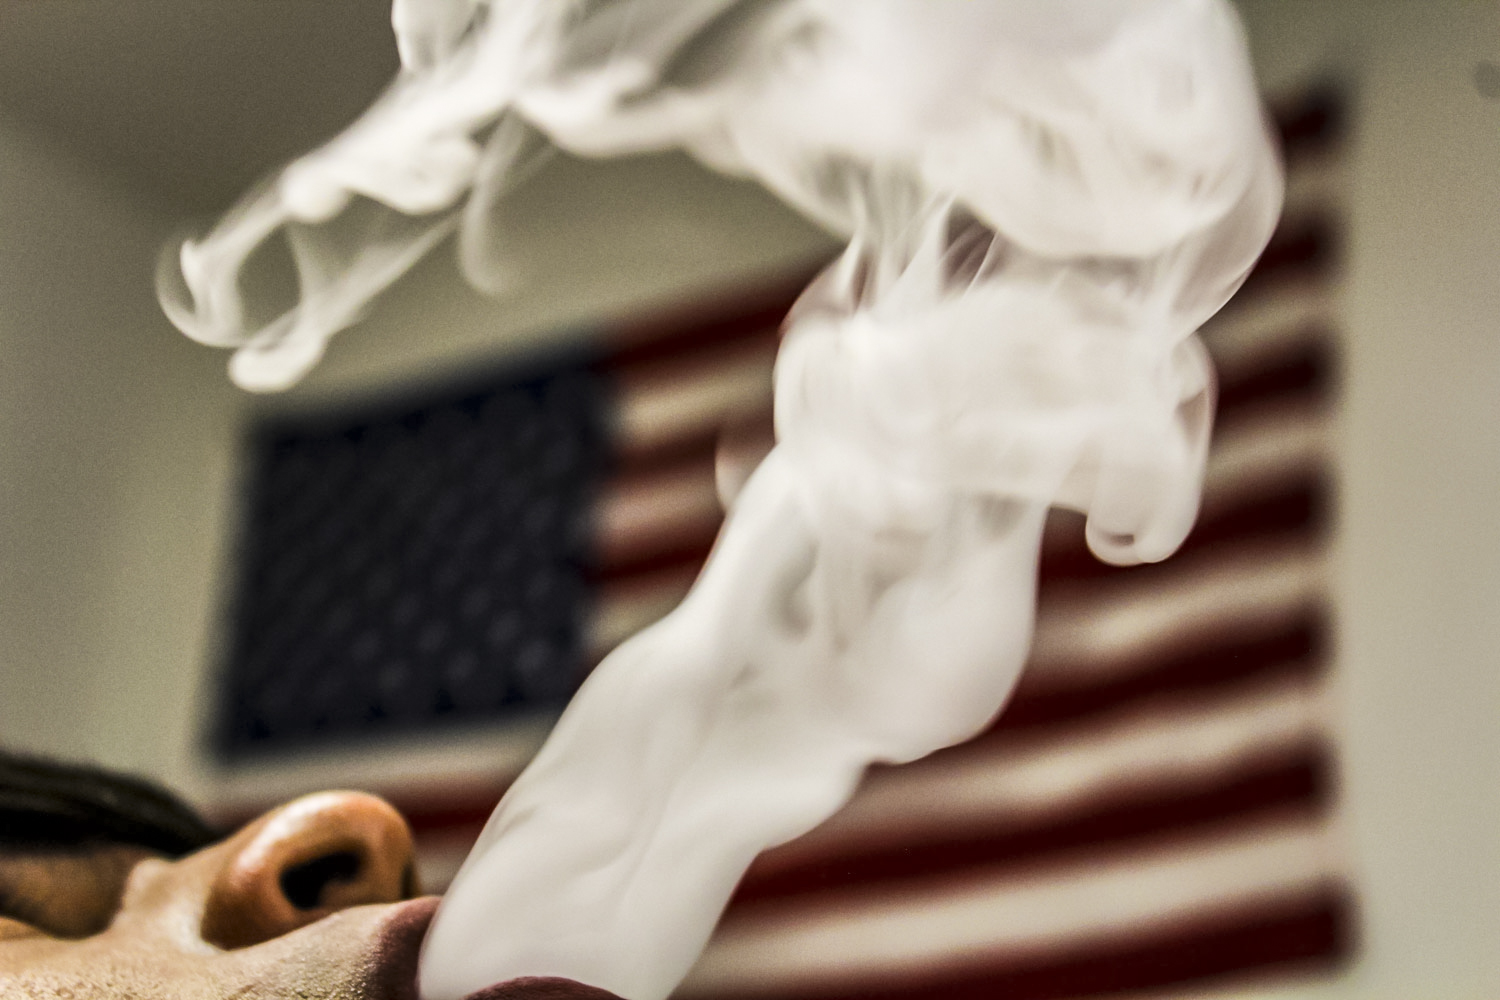 As a vapor cloud rises in the air, an American flag hangs proudly behind it. With 47 states already having restrictions such as no indoor vaping, people are showing initiative to make a change in the nation. Massachusetts has even took steps further and banned the sale of all vaping products for four months.